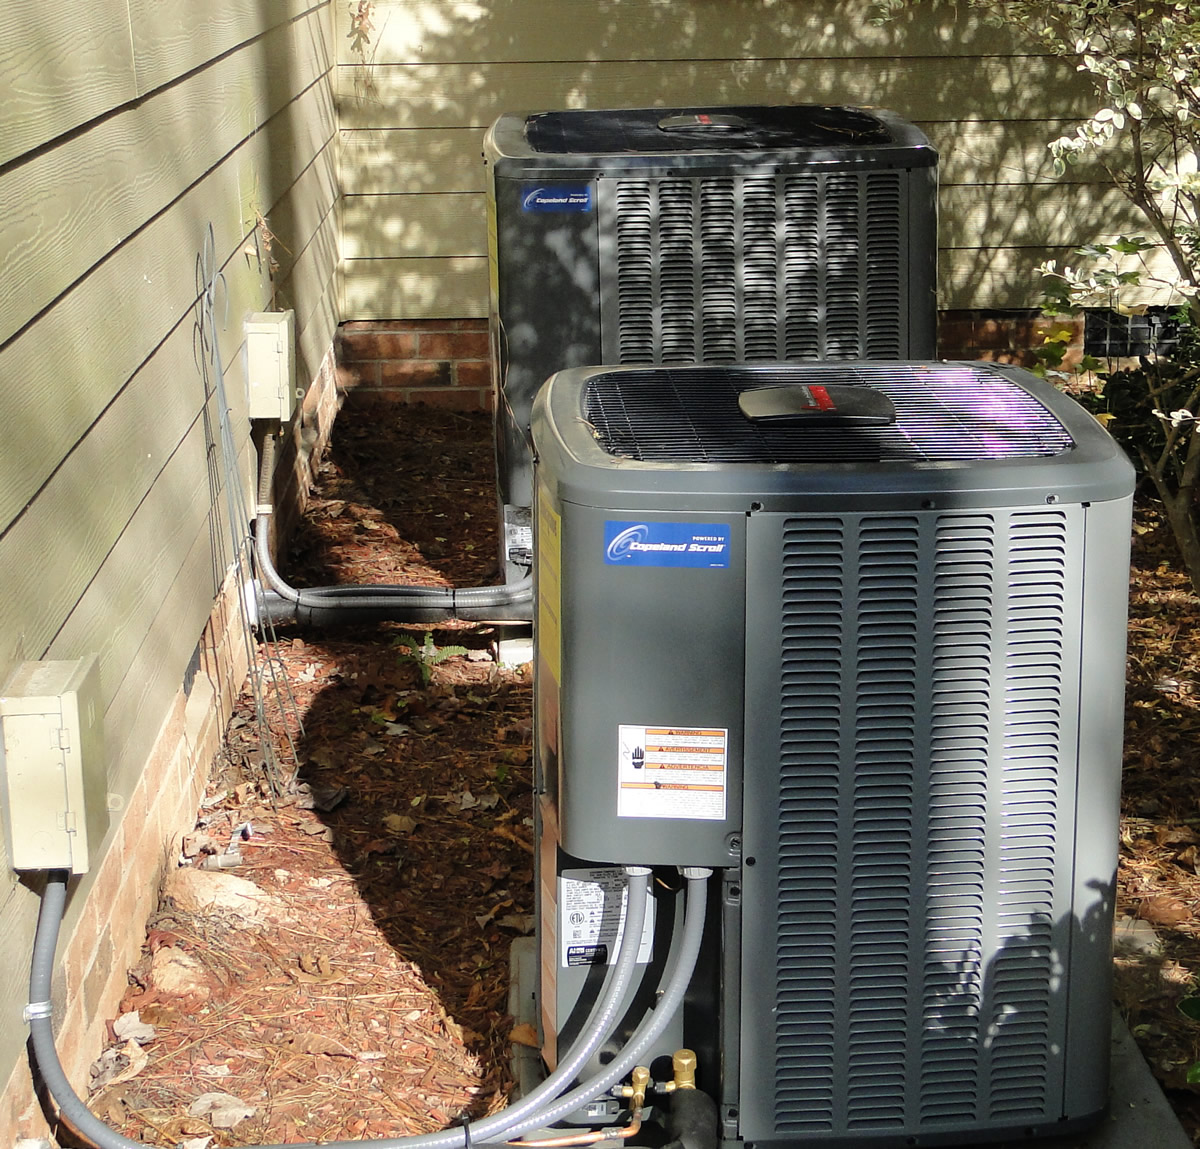 72 Degrees Heating And Air Conditioning Apex Nc 27502